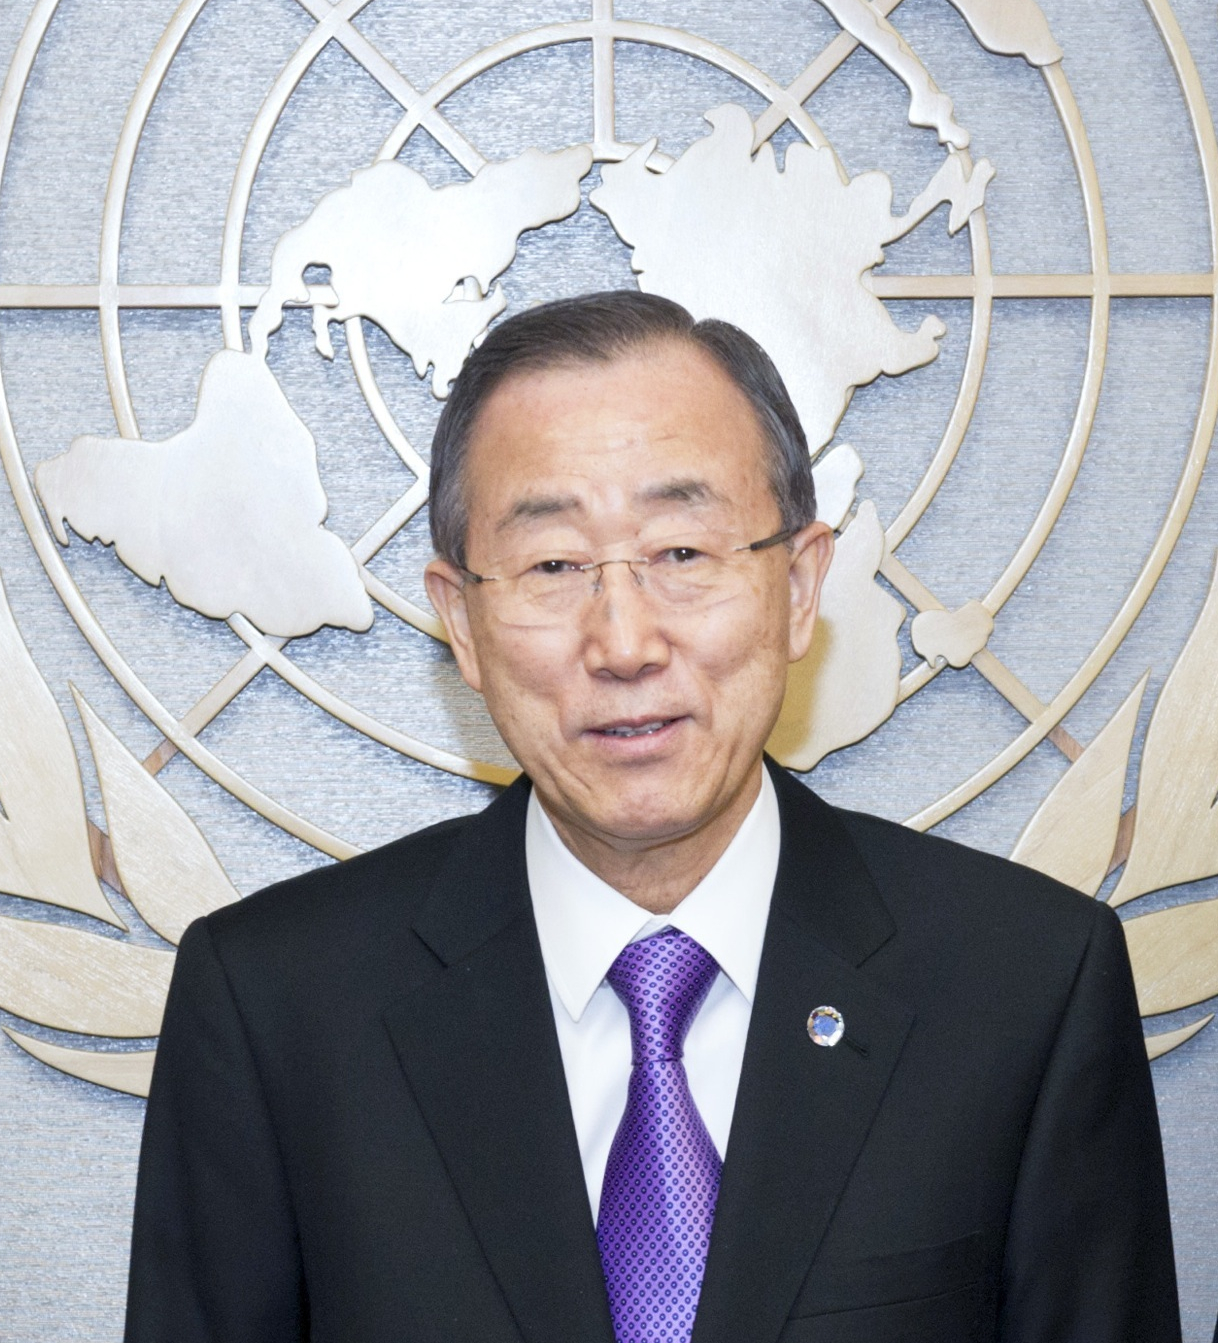 Secretary-General Ban Ki-moon meets with the Middle East Quartet.